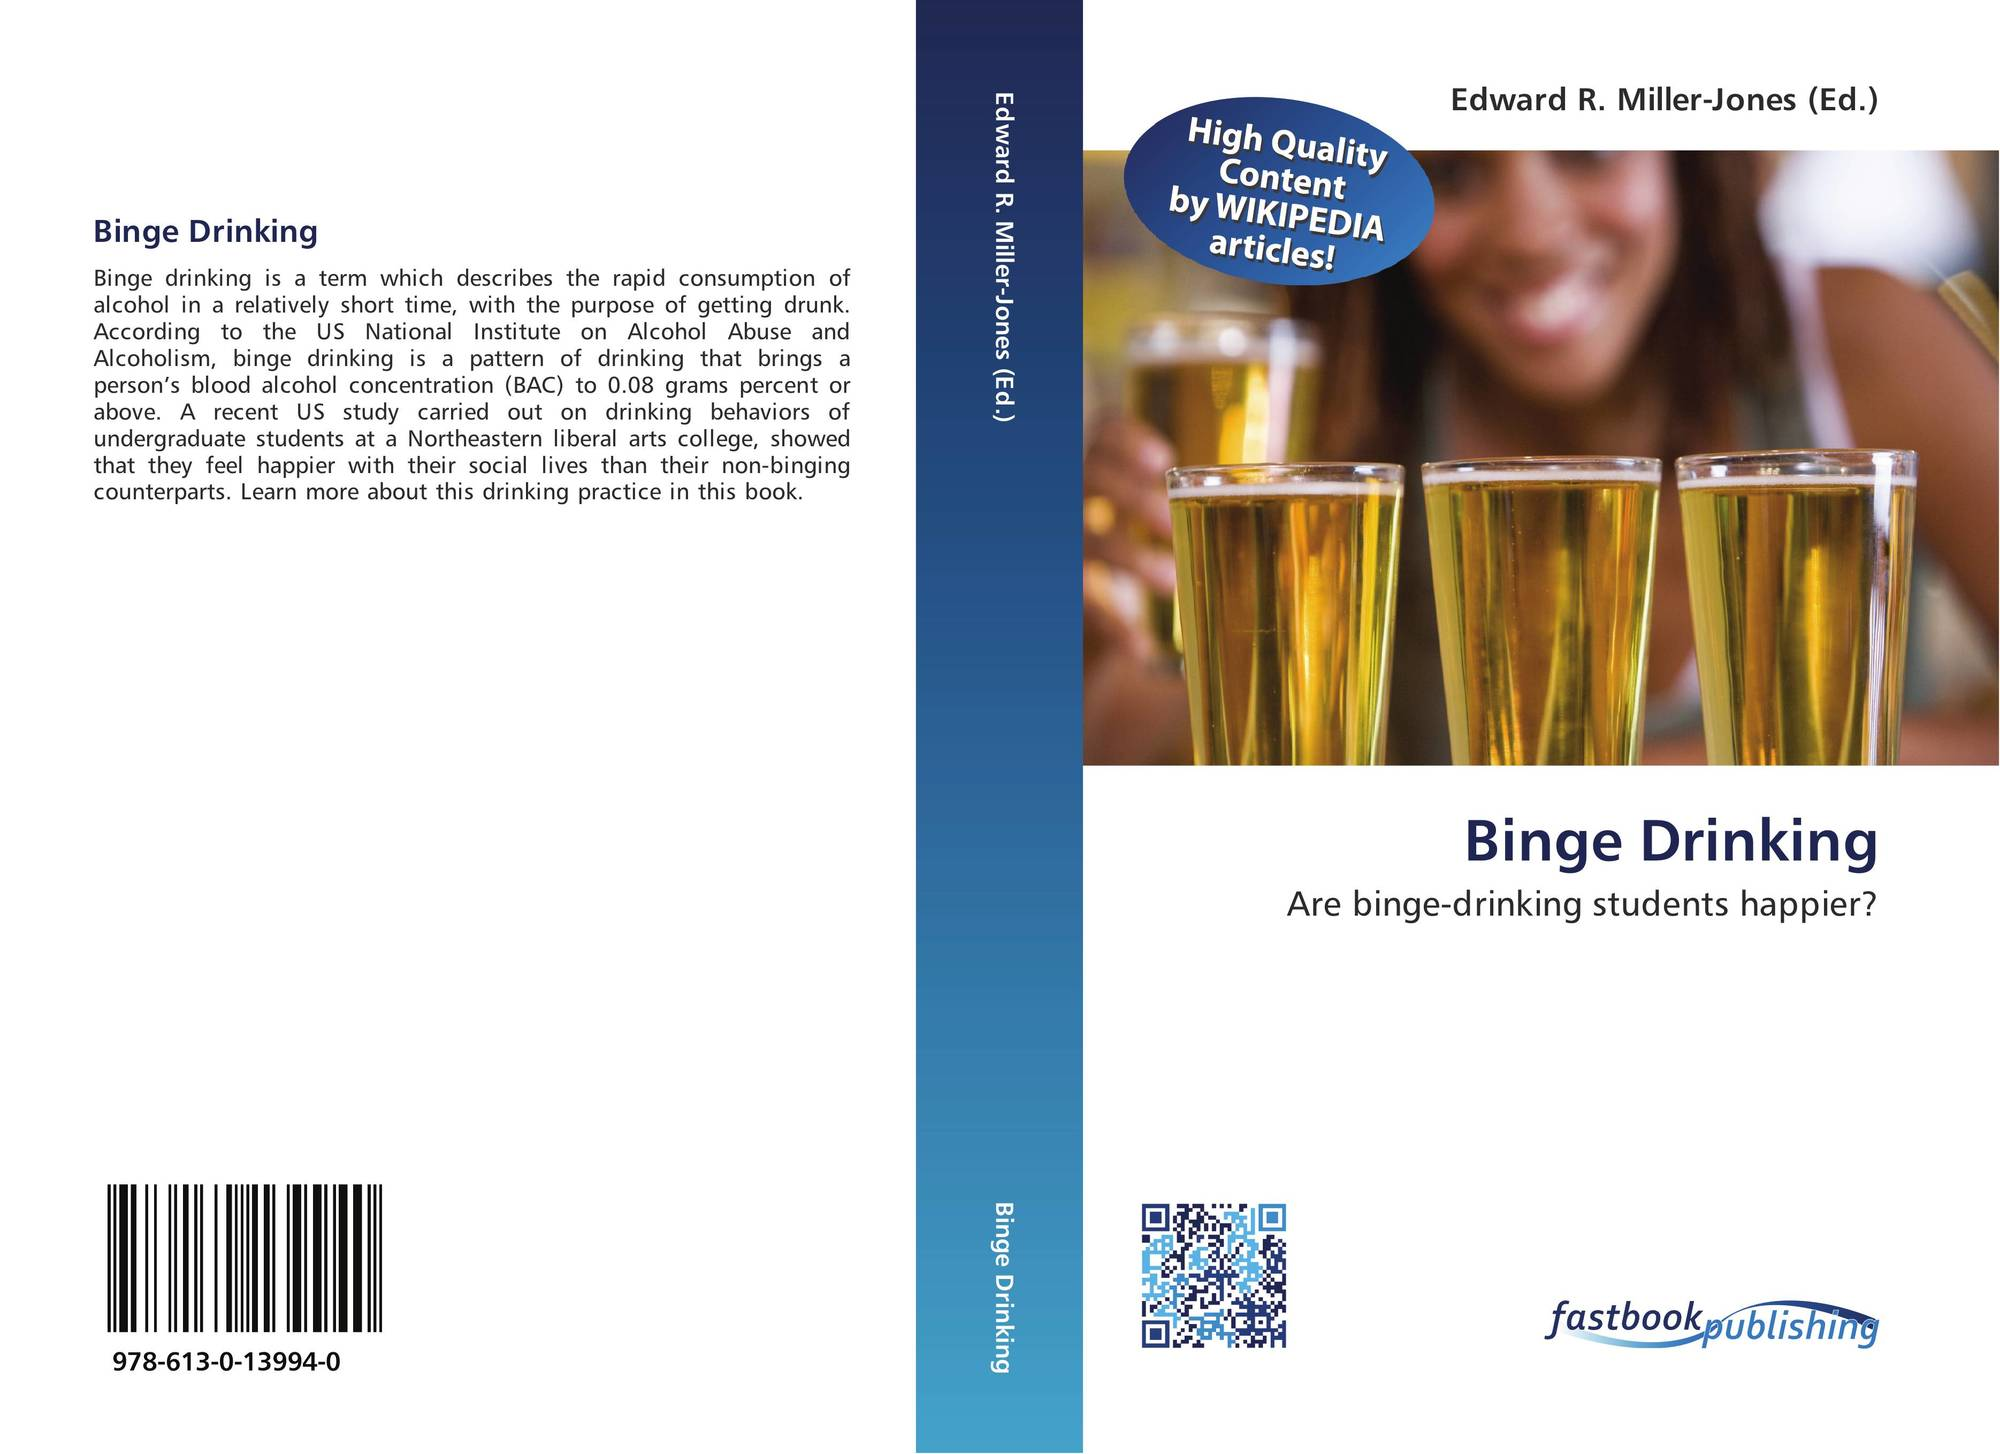 an analysis of the problem of binge drinking in the united states of america Lowering the legal drinking age: an analysis of the pros and cons the legal drinking age in the united states has been set at 21 binge drinking.